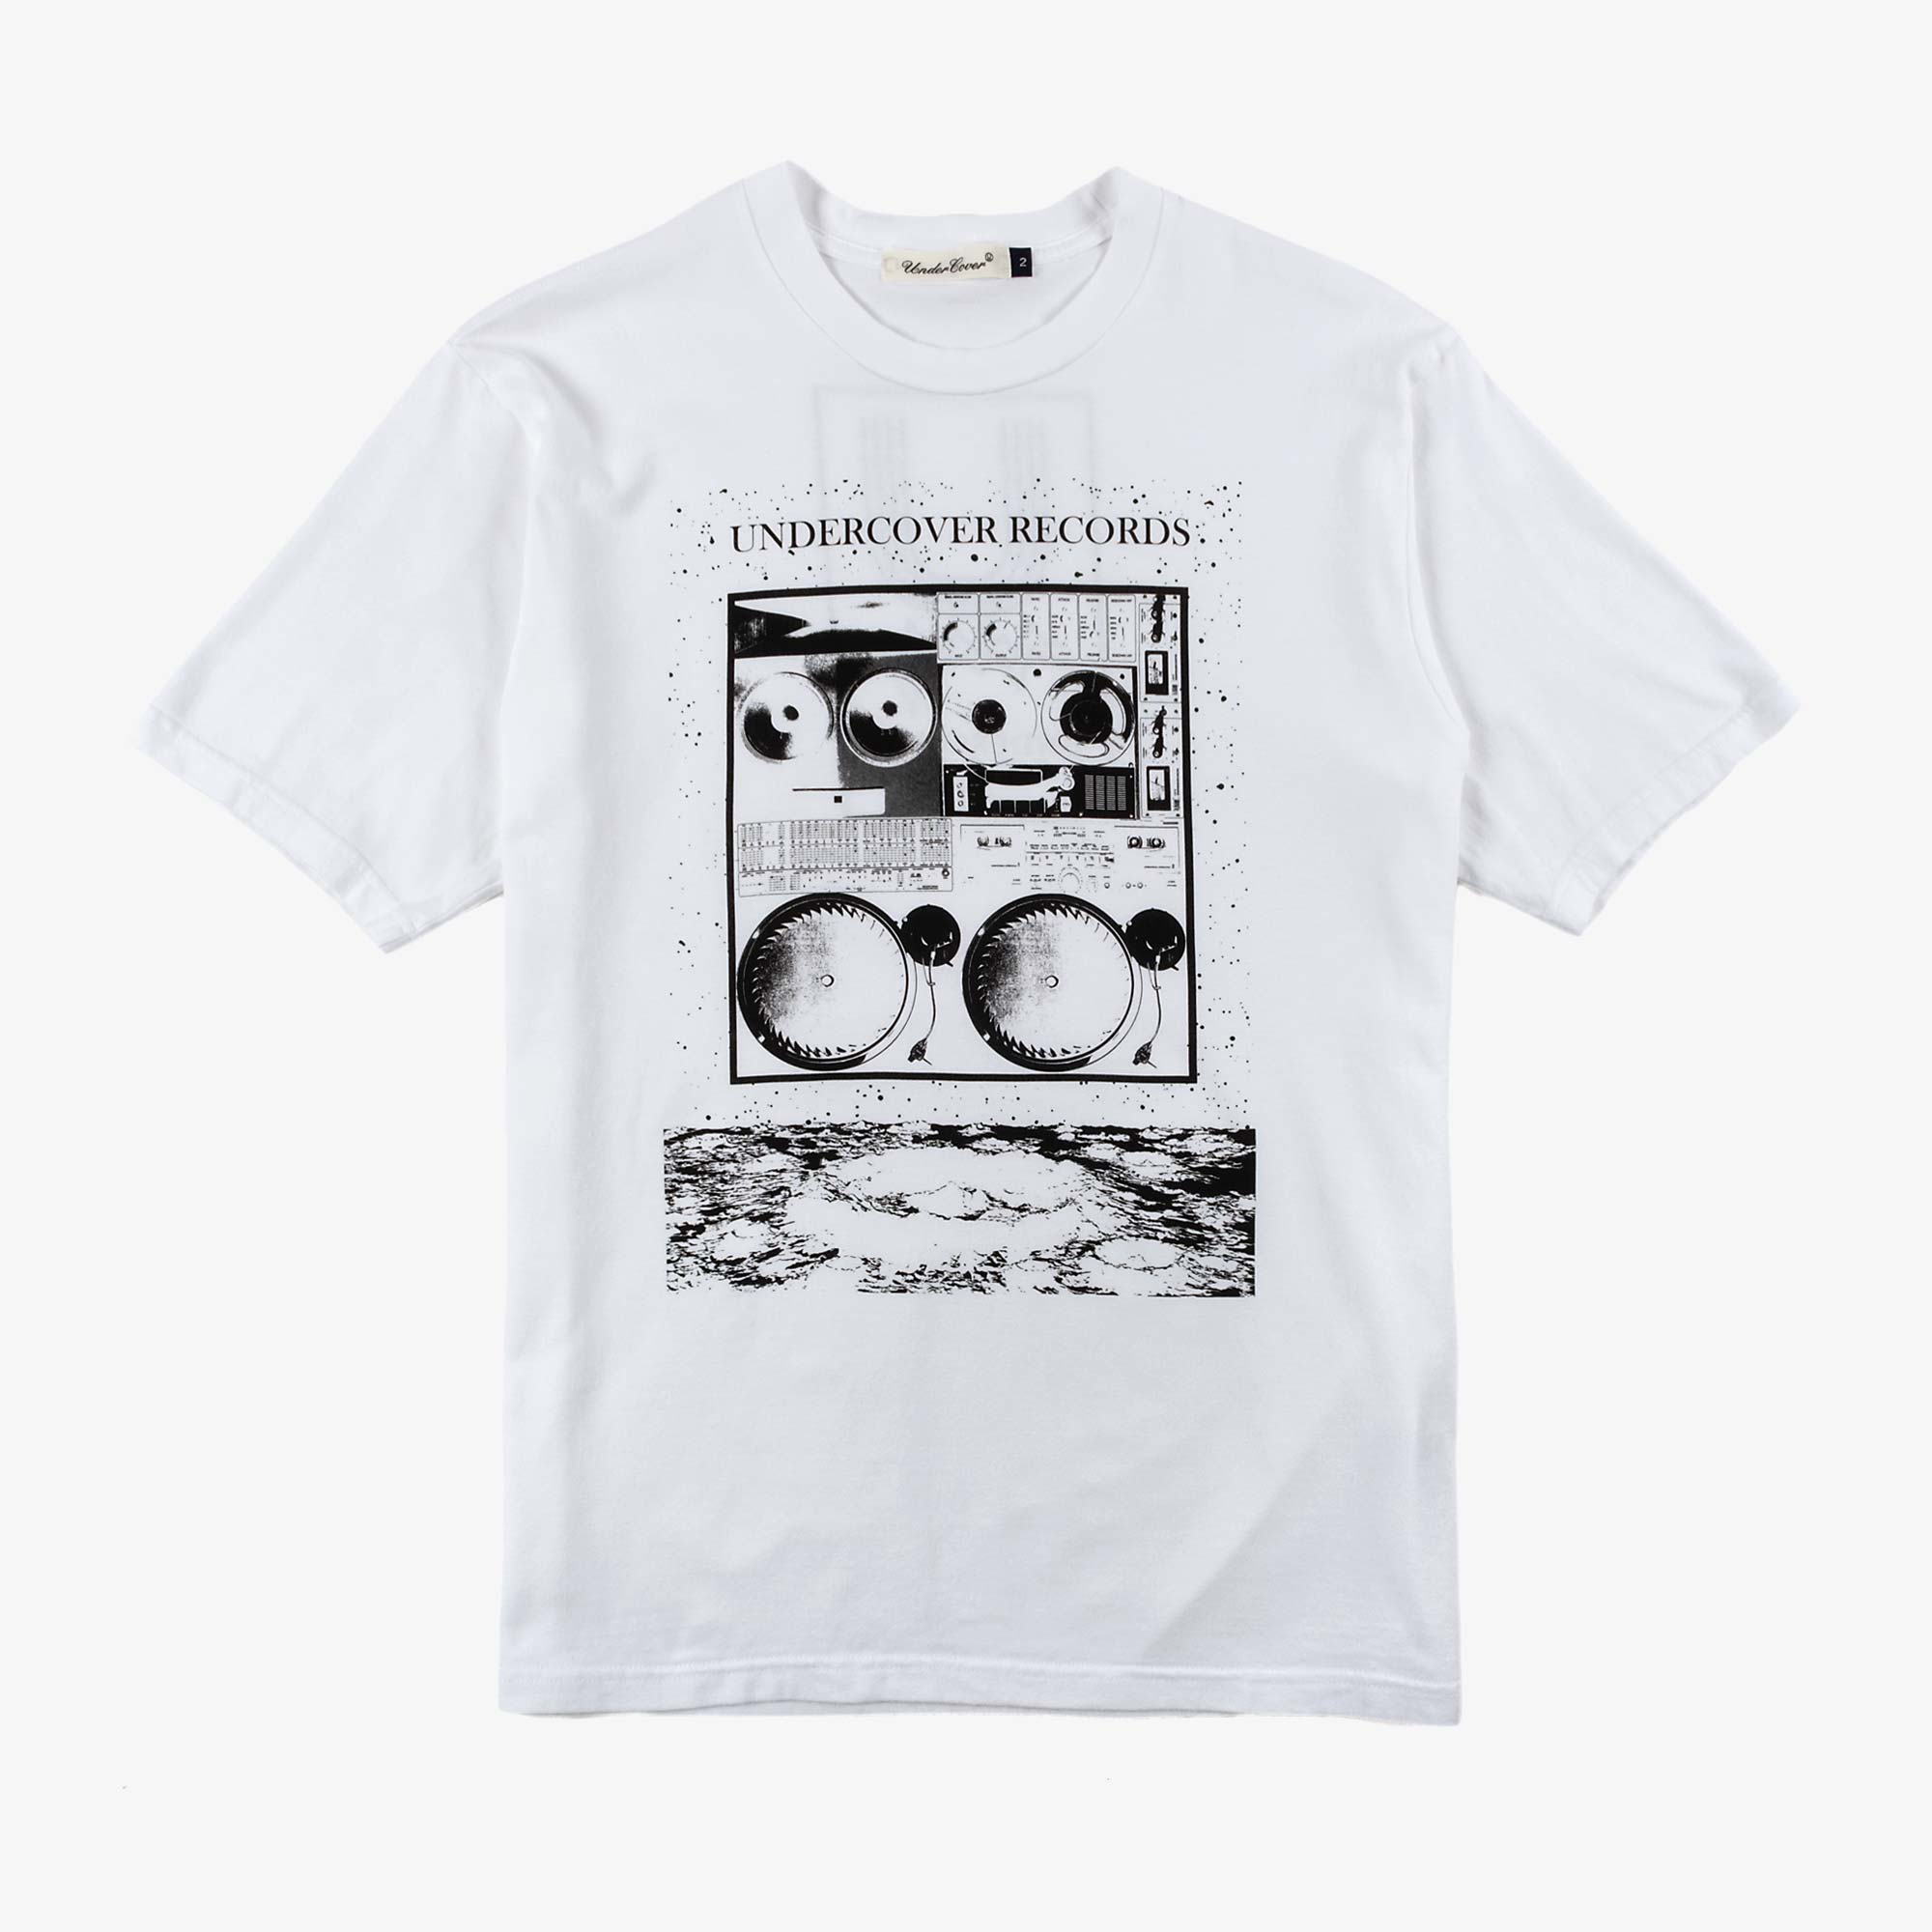 Undercover Records Tee UC1A3803 - White 1